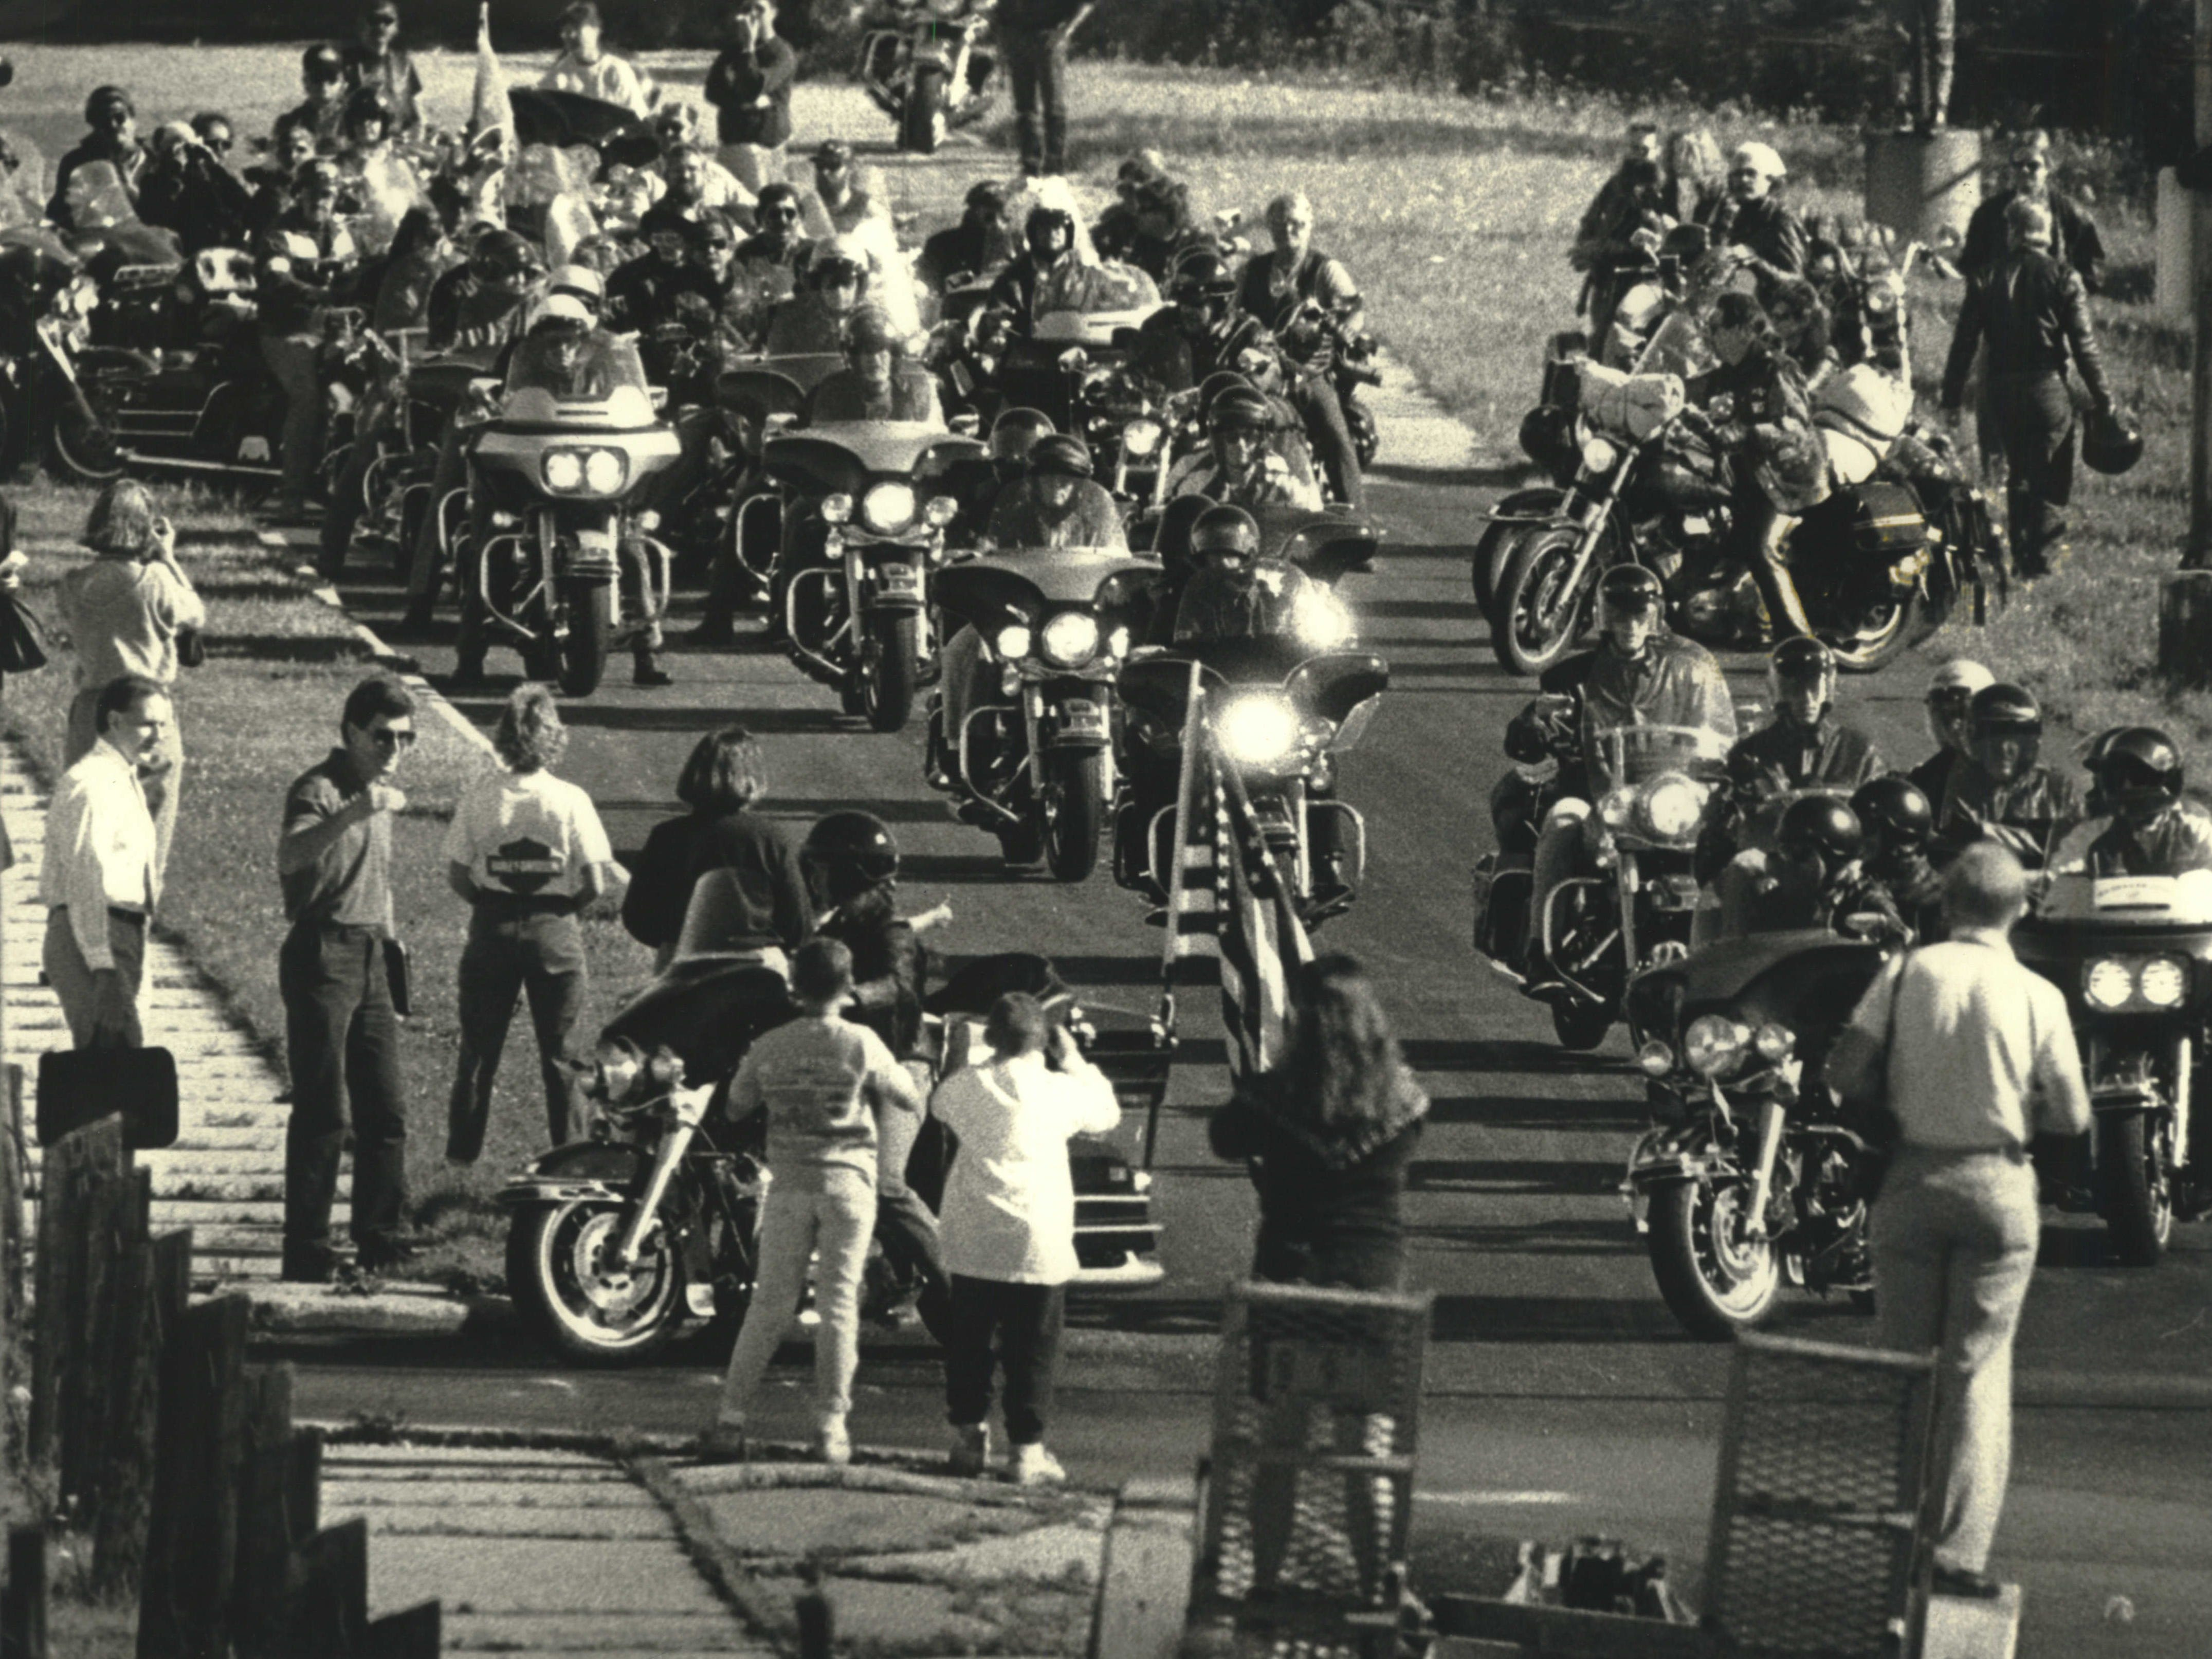 1990: Hundreds of Harley-Davidson riders, including top company officials, gather by the company's engine transmission plant, 11700 W. Capitol Drive, Wauwatosa. The group was heading on a 900-mile ride to the 50th Anniversary Black Hills Motor Classic and National Harley Owners Group Rally in Sturgis, S.D.